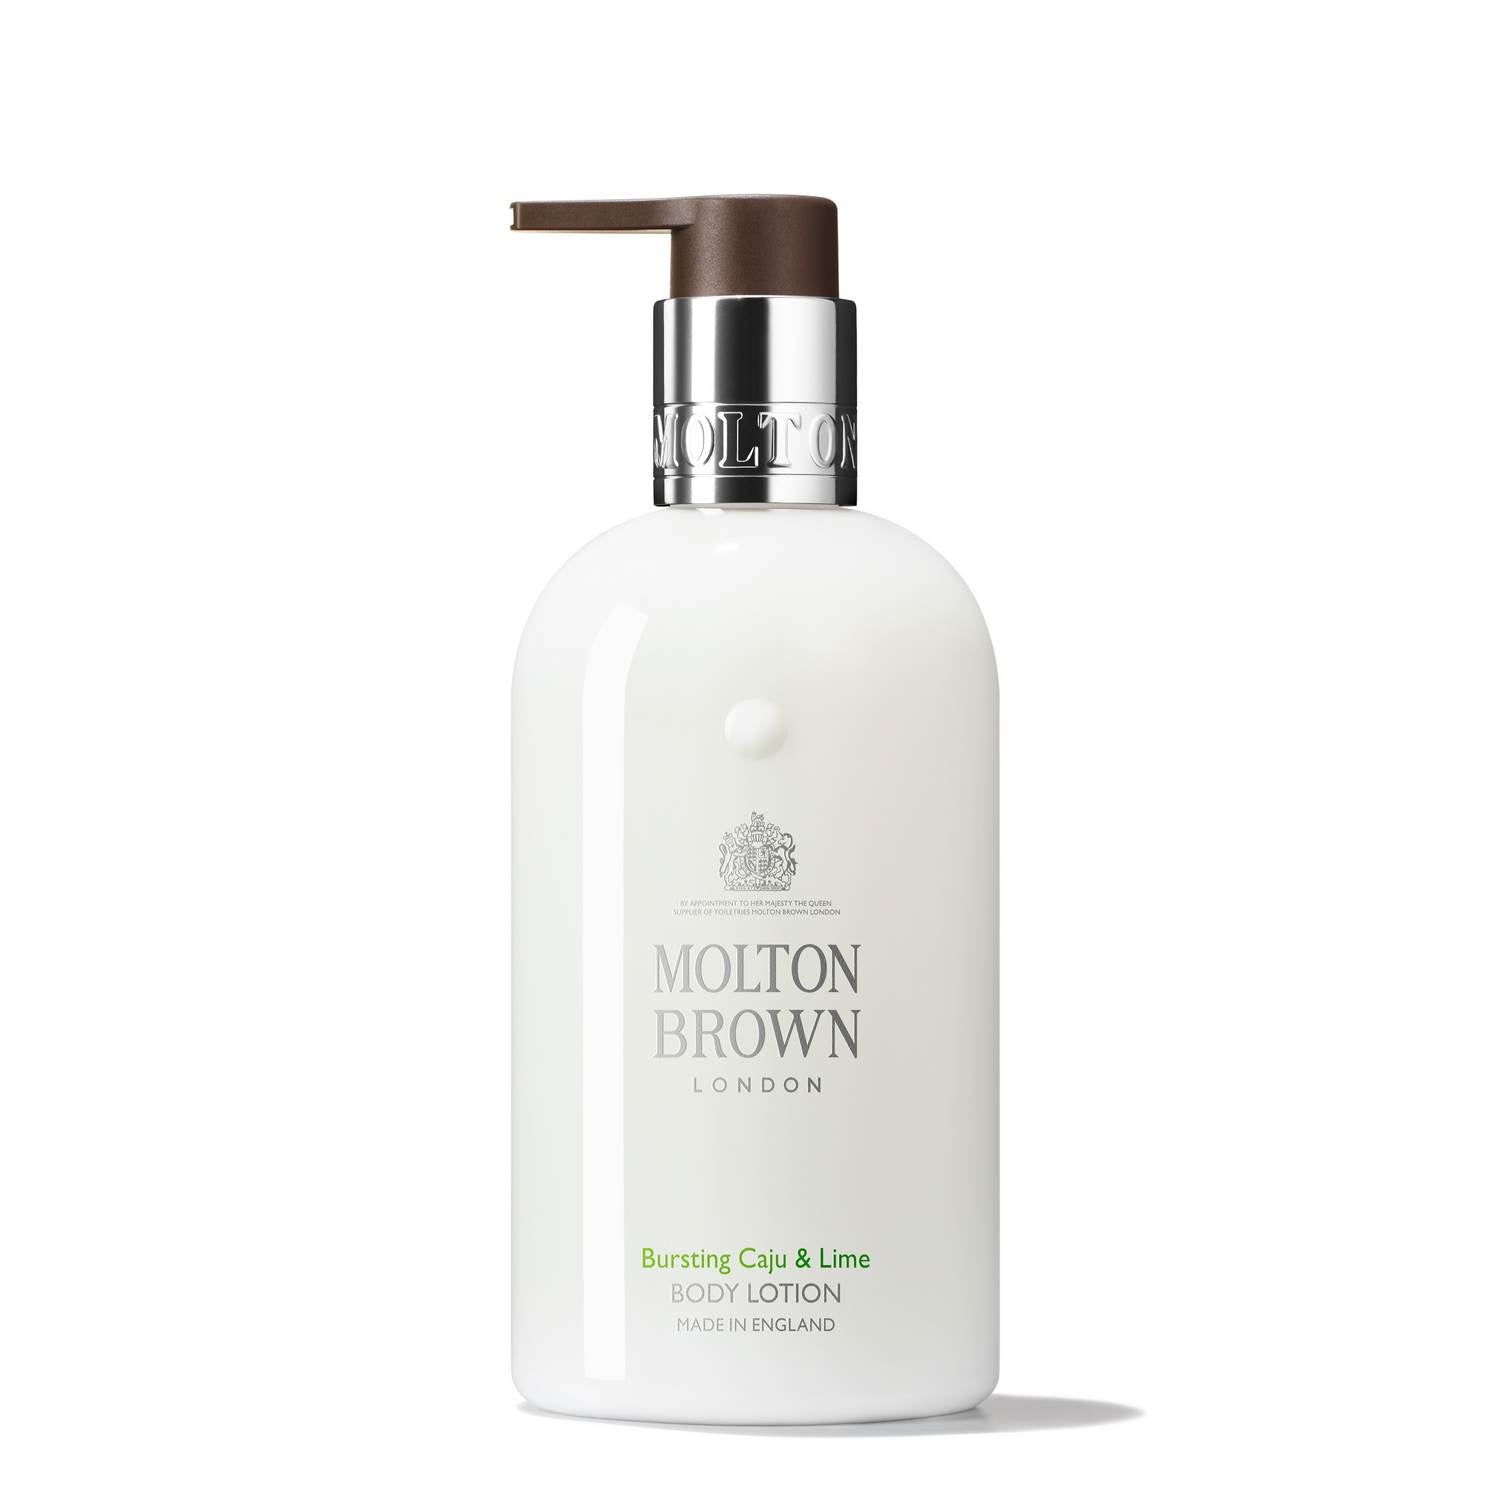 Molton Brown Caju & Lime Body Lotion